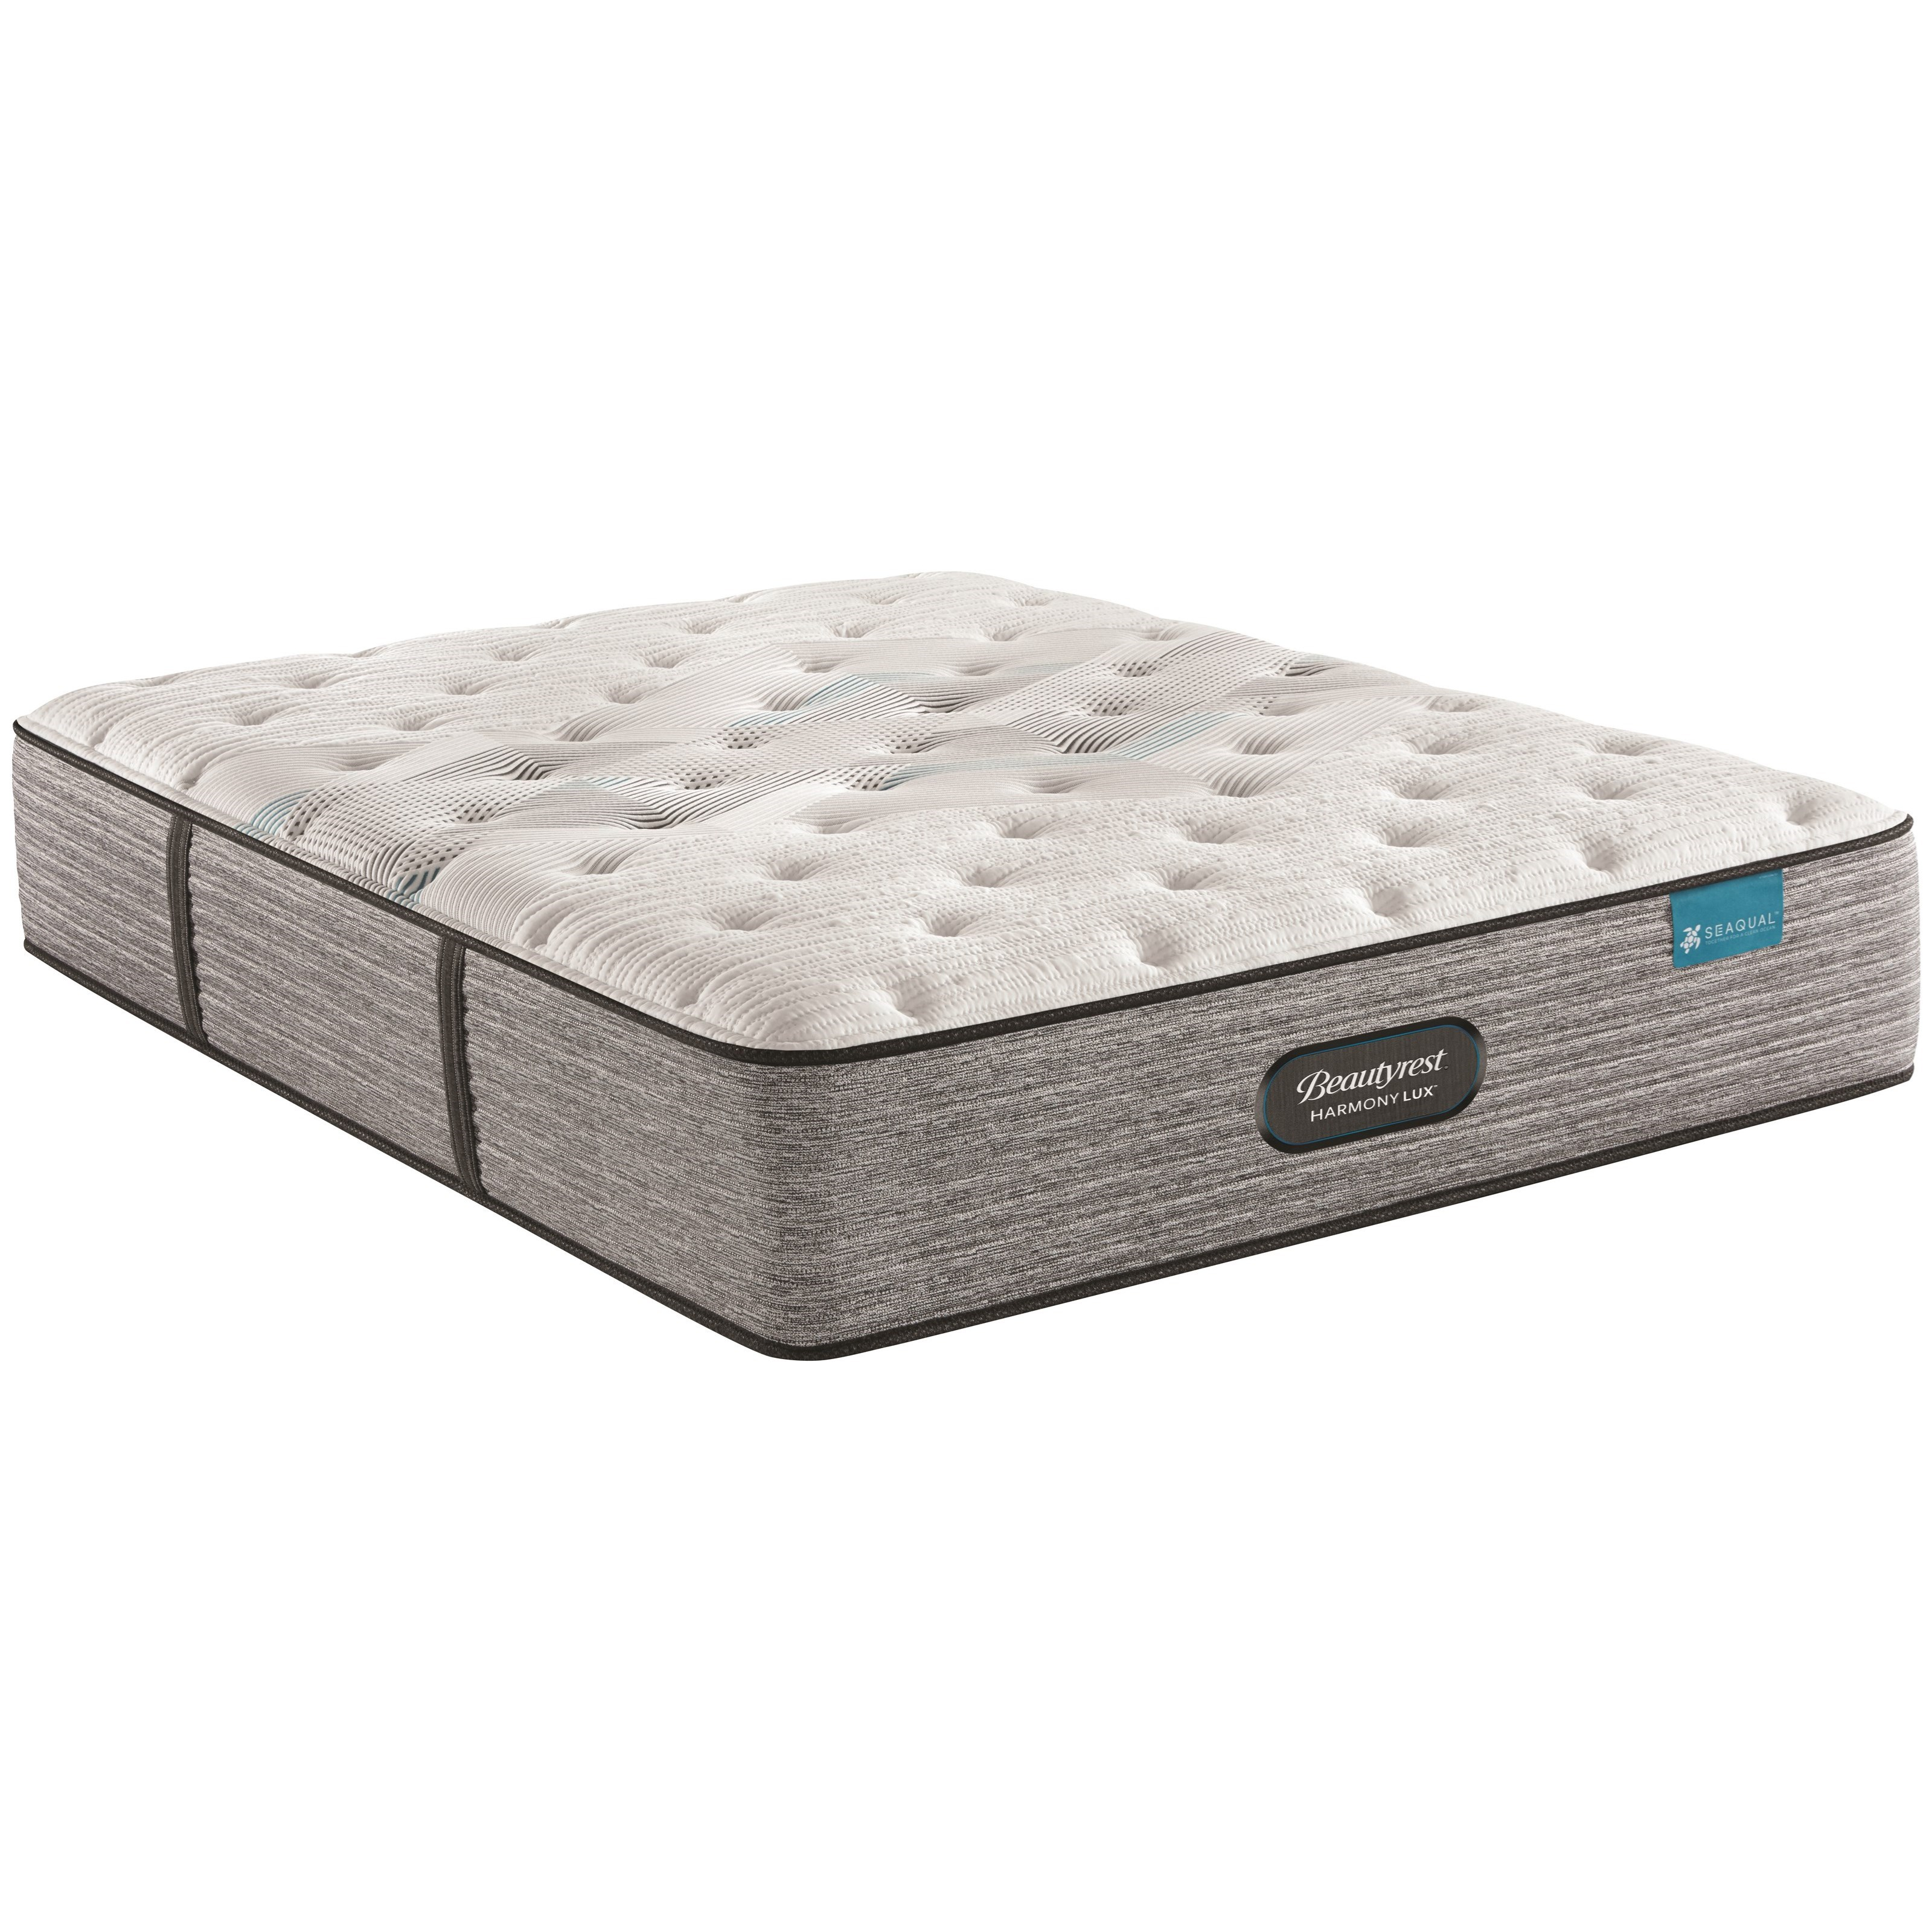 "Carbon Series Plush Queen 13 3/4"" Plush Mattress by Beautyrest at Rotmans"